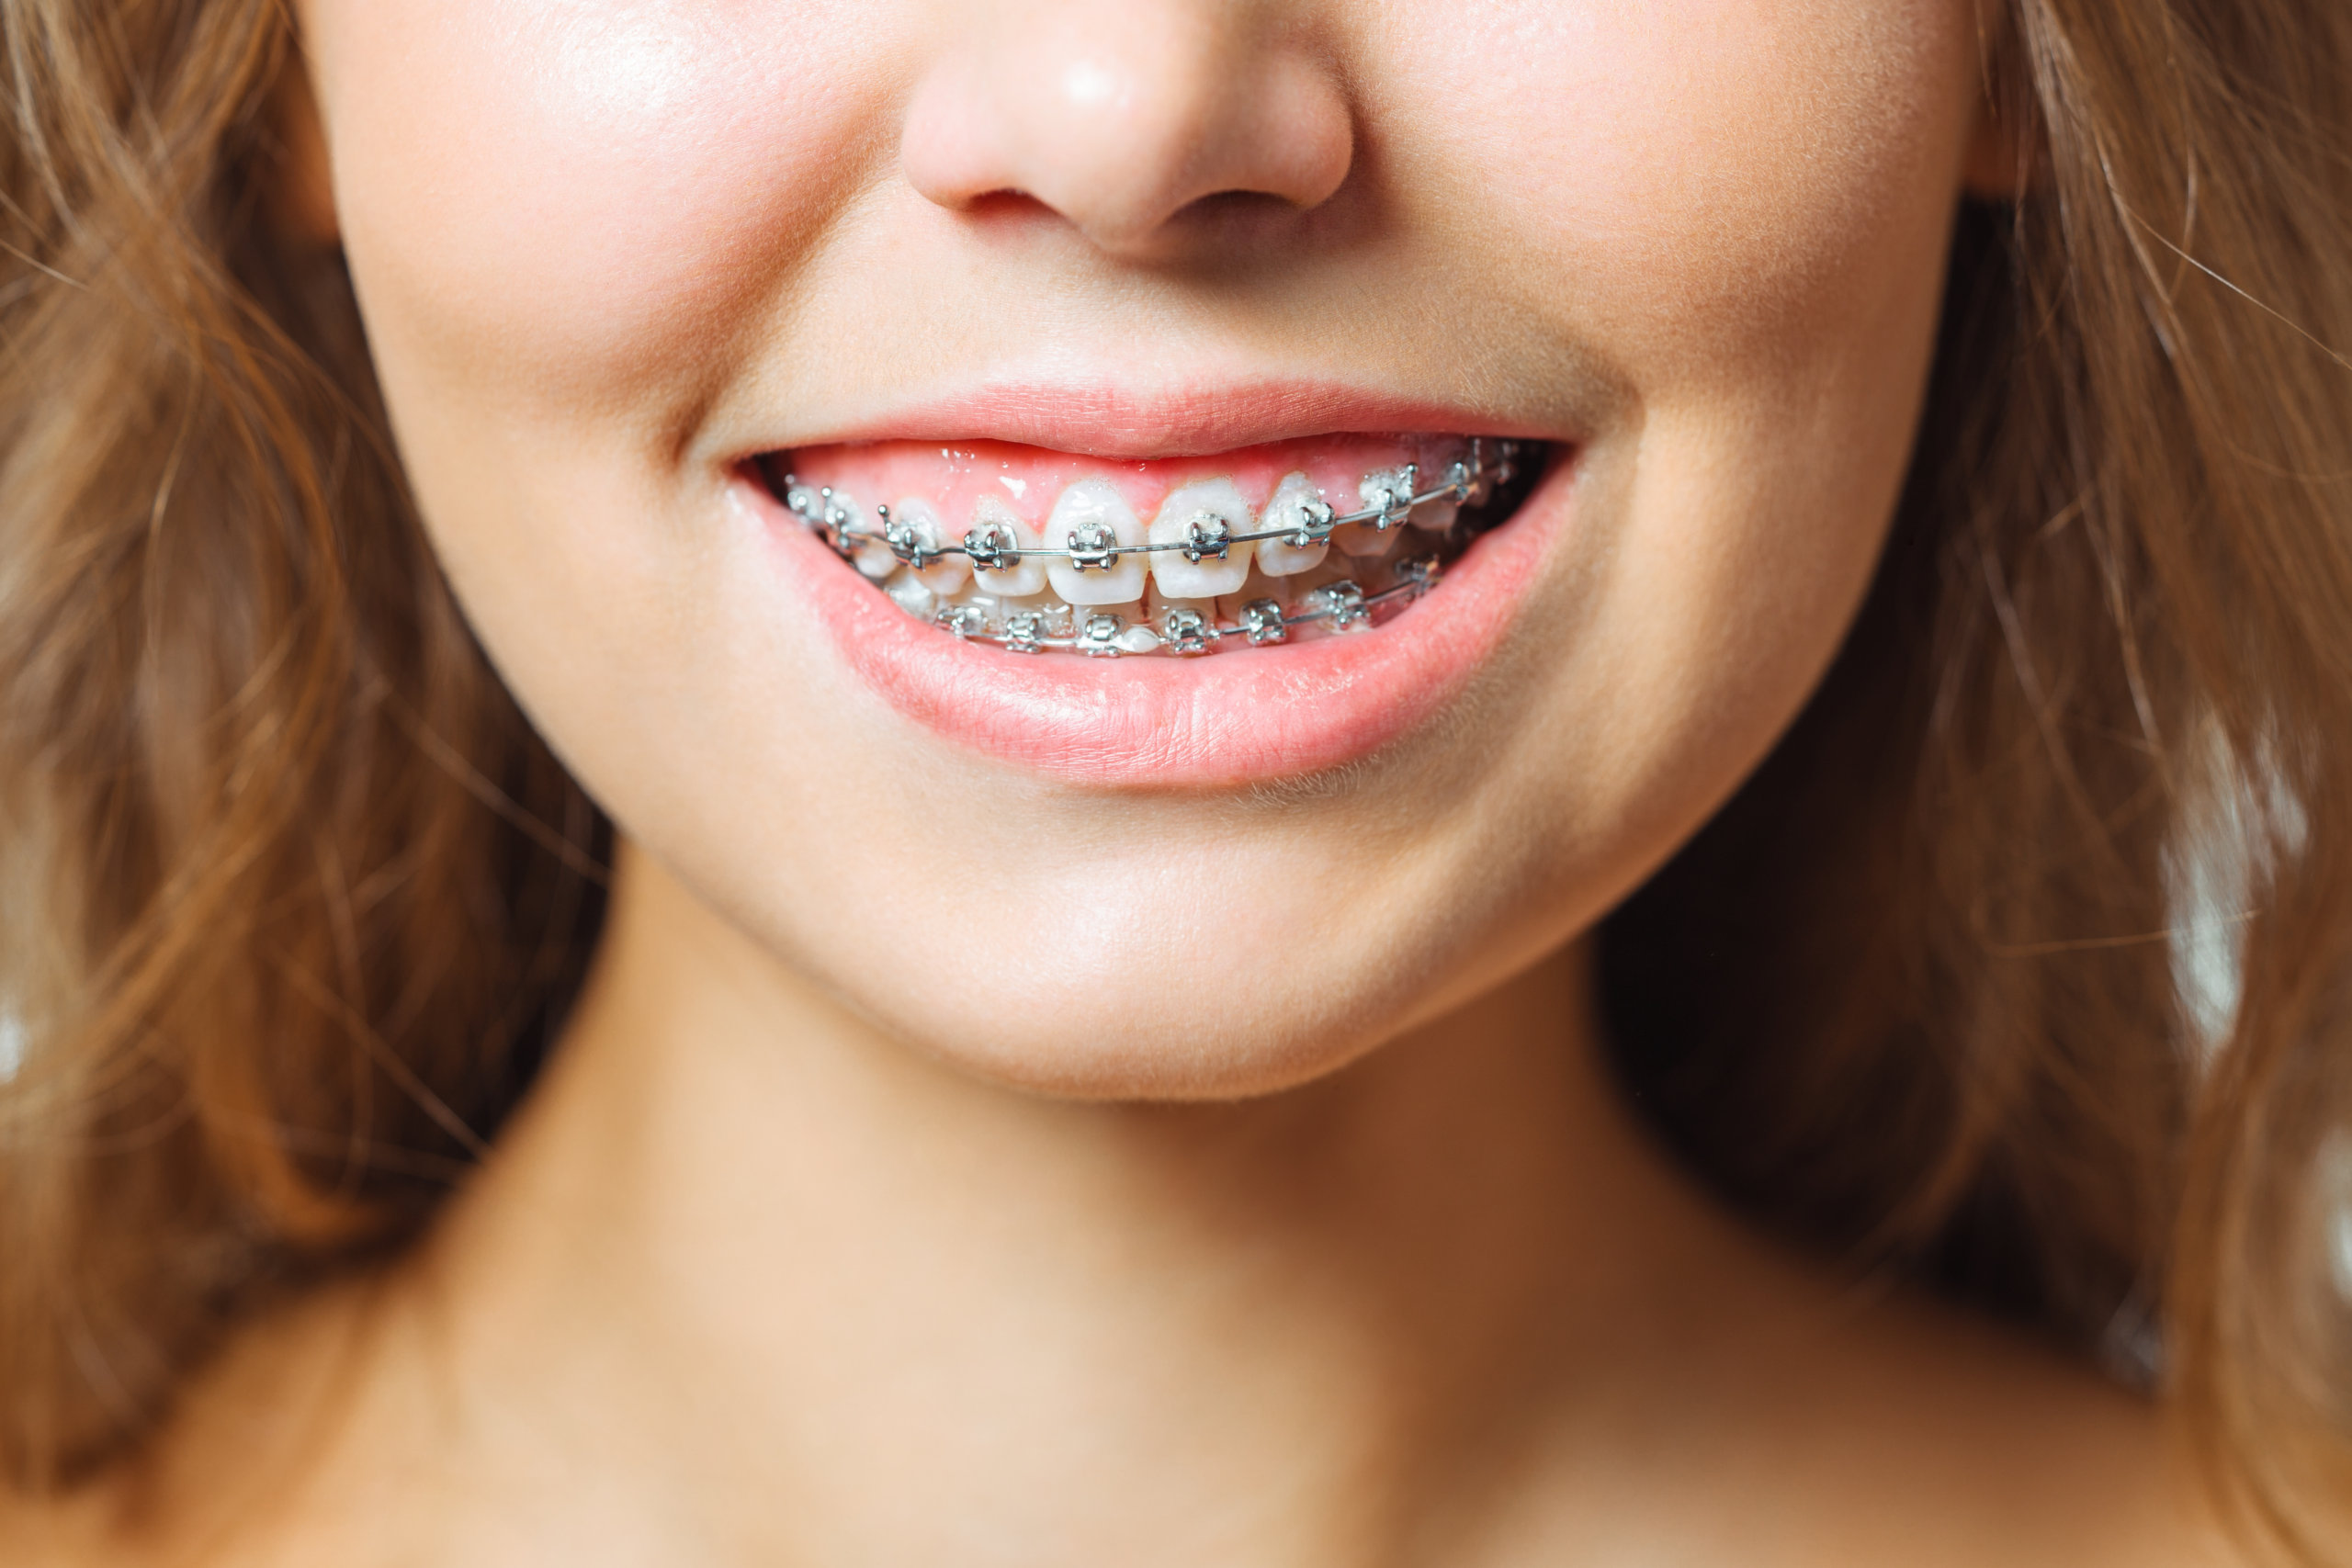 Girl with Gummy Smiles showing Orthodontics